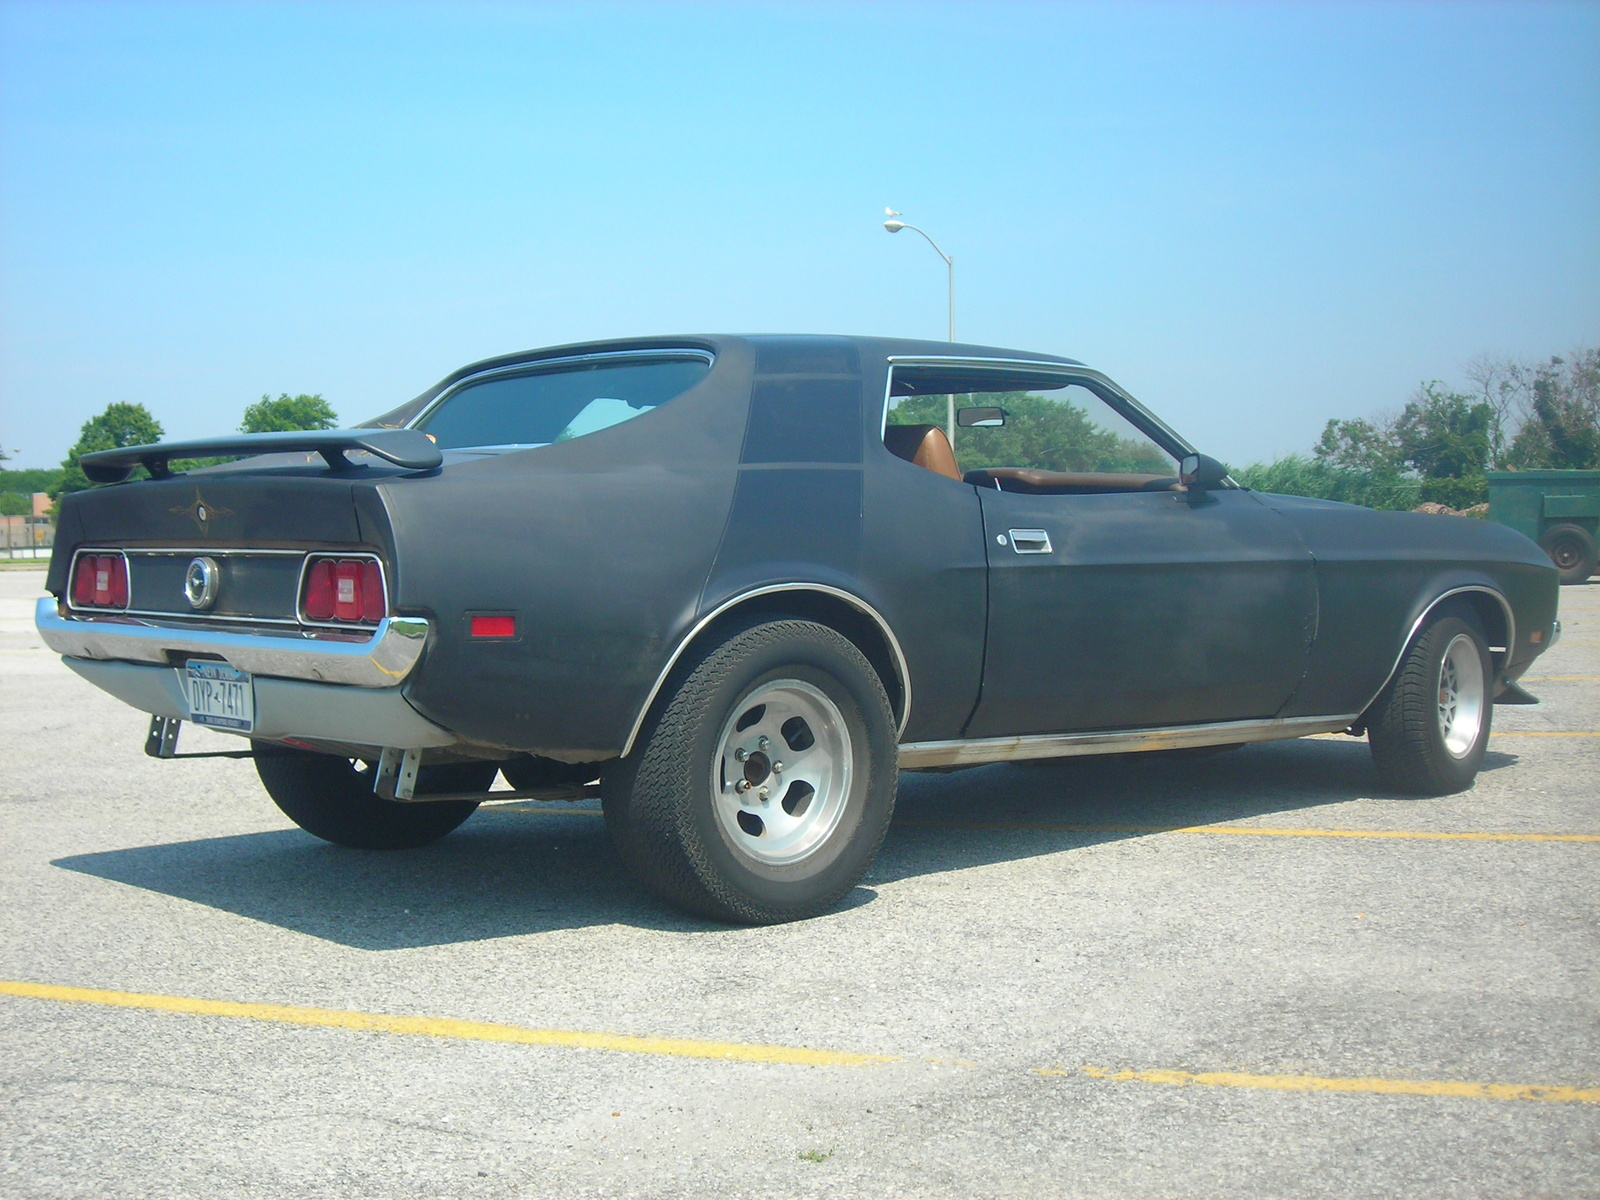 3848 Jauge A Essence Peugeot 203 403 also Exterior 60575170 likewise 1971 Ford Mustang Pictures C3696 pi13975403 besides 1999 Chevrolet Corvette Pictures C404 pi36401410 as well Midnight Blue Camaro Ss. on 2000 chevrolet camaro coupe